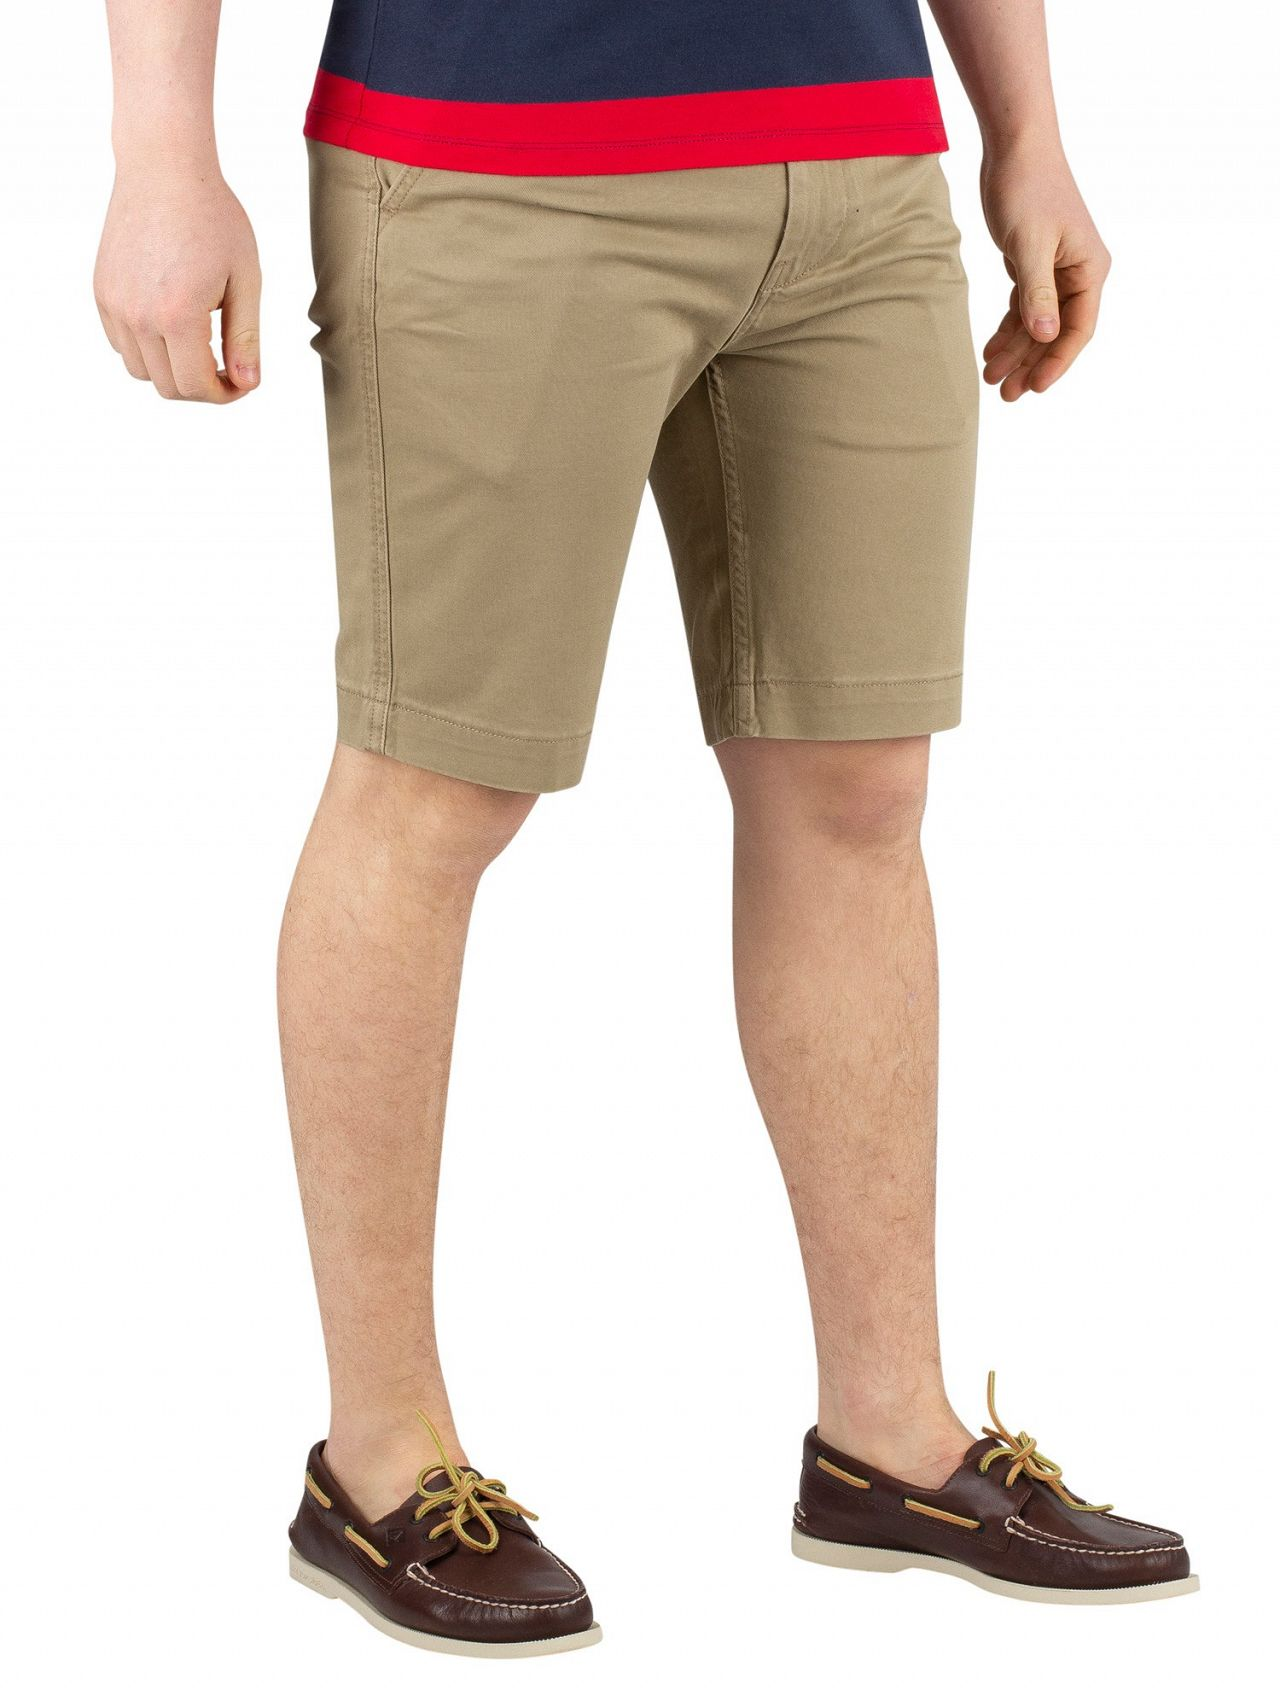 a4c2977f Levi's Lead Gray Soft 502 True Chino Shorts | Standout